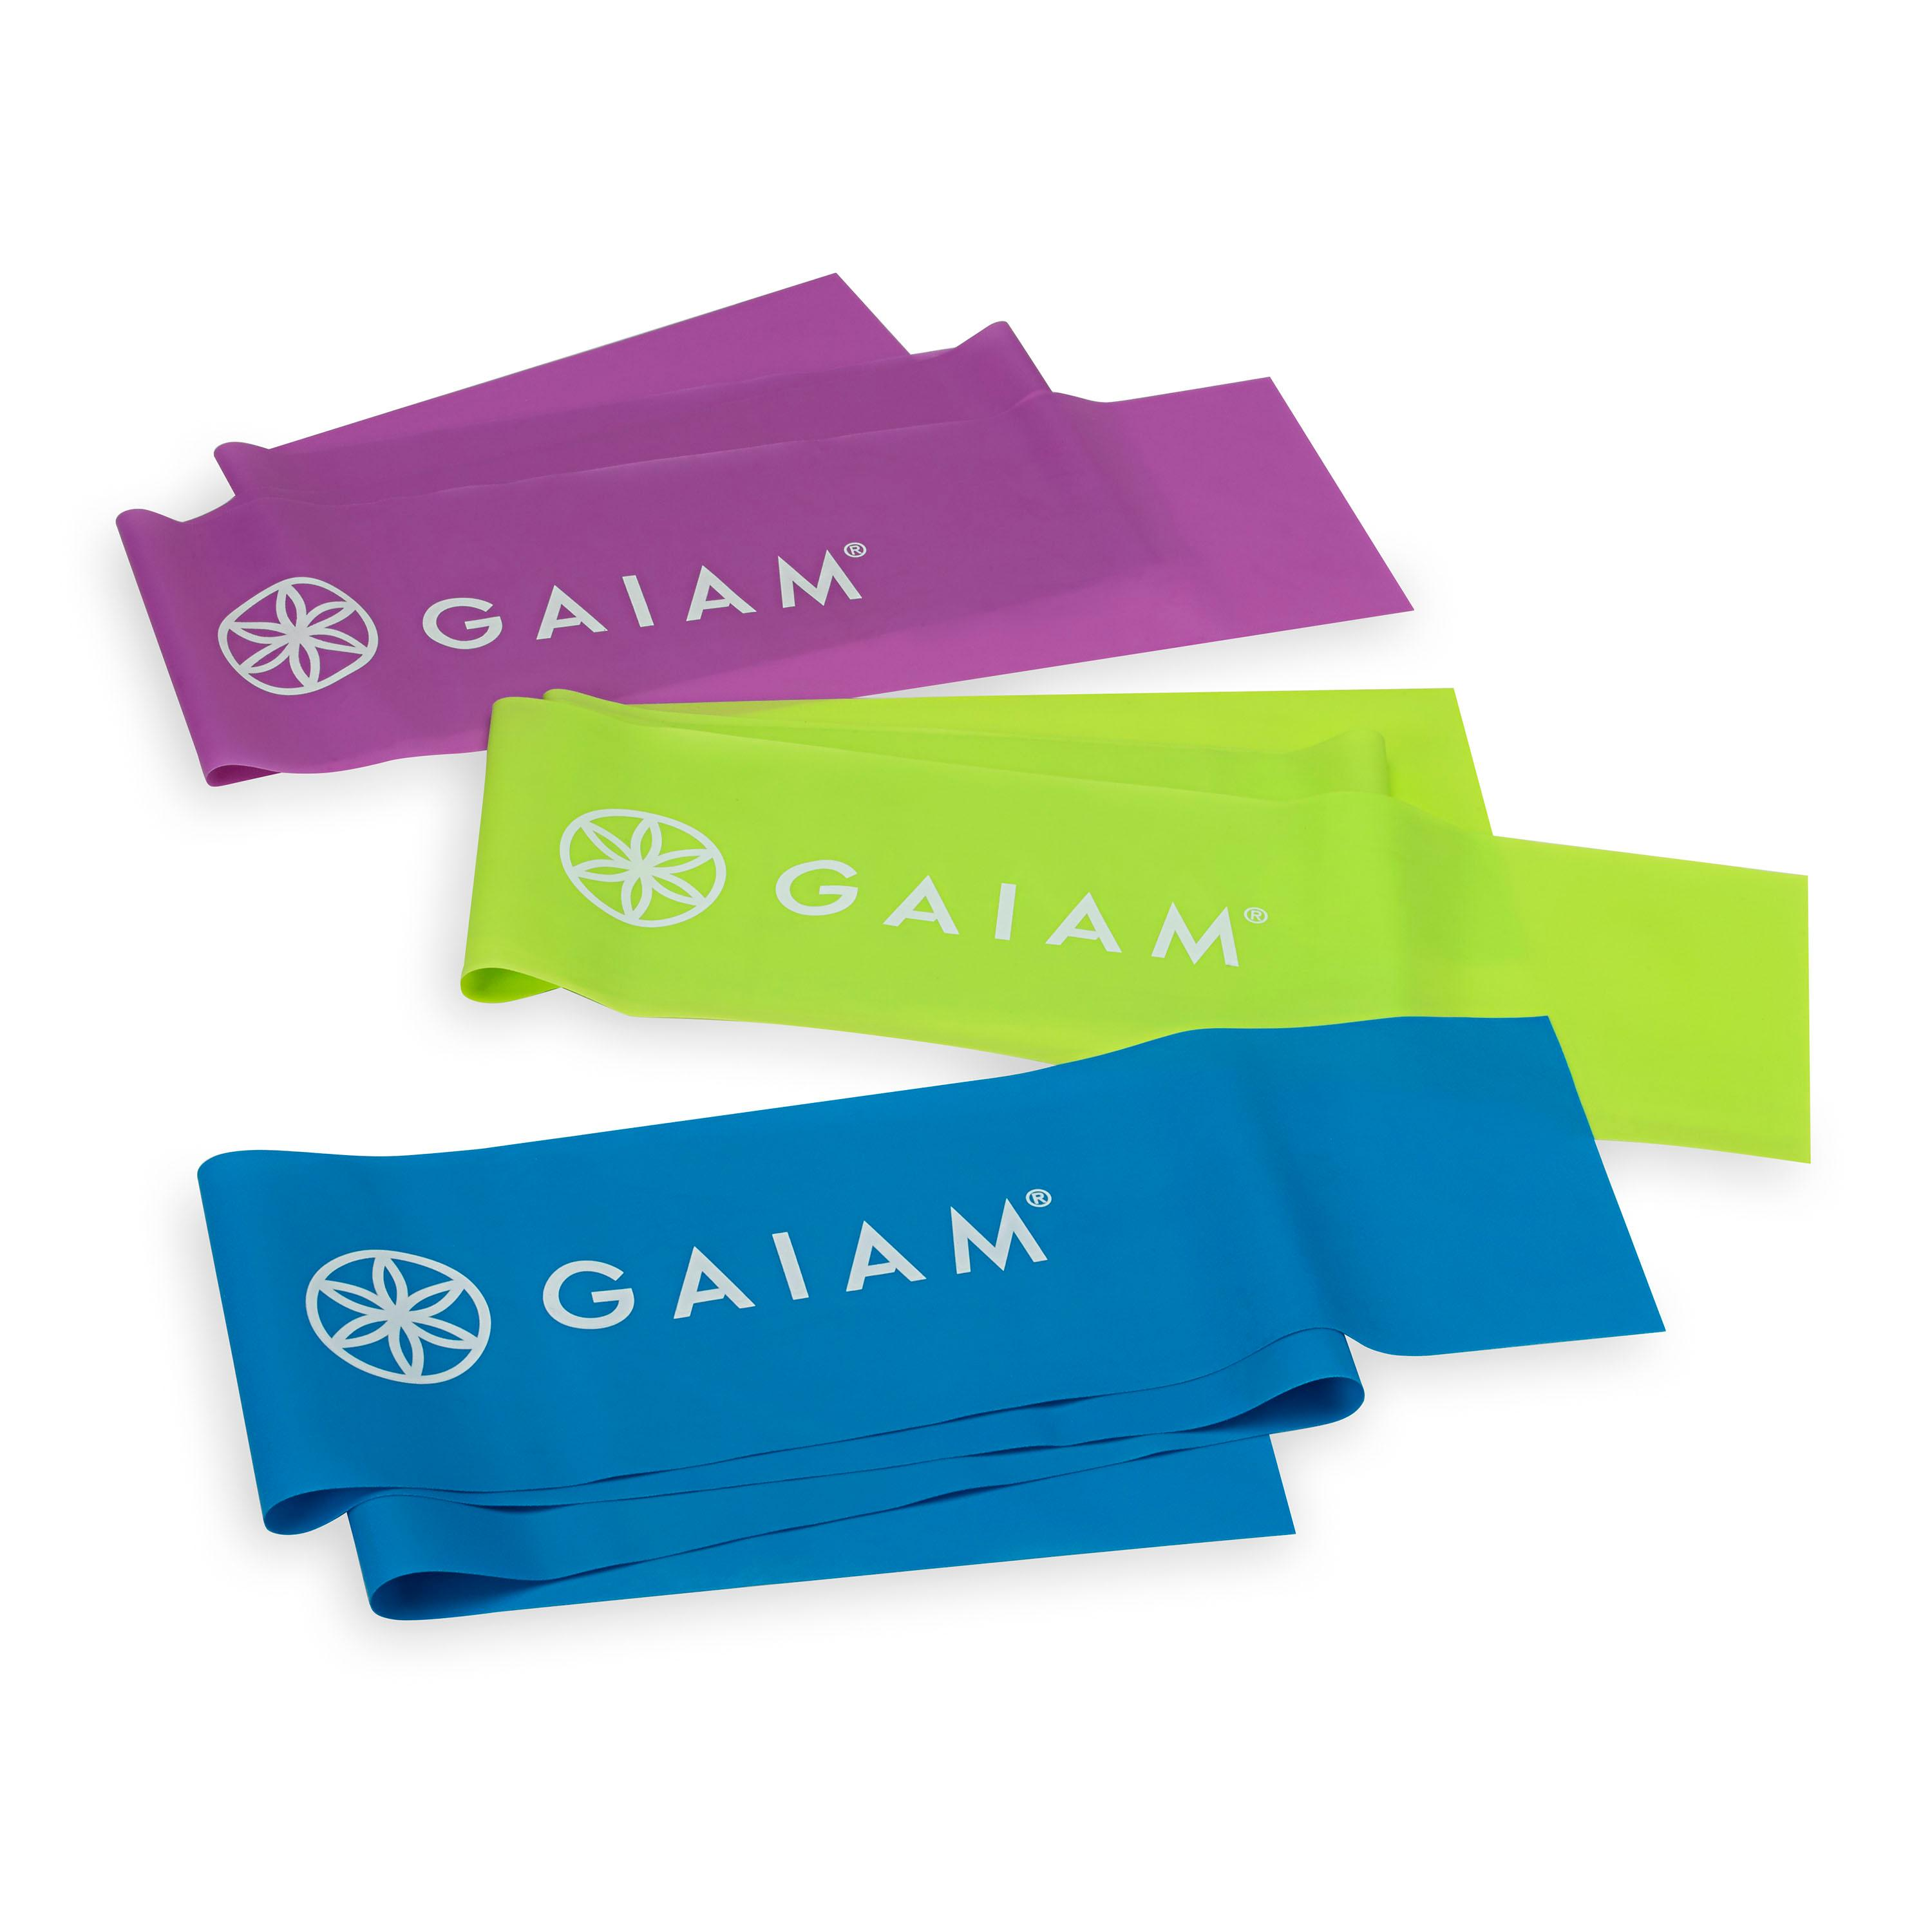 Gaiam Resistance Band Kit // Price: $14.98 // (Image: Gaiam)<p></p>